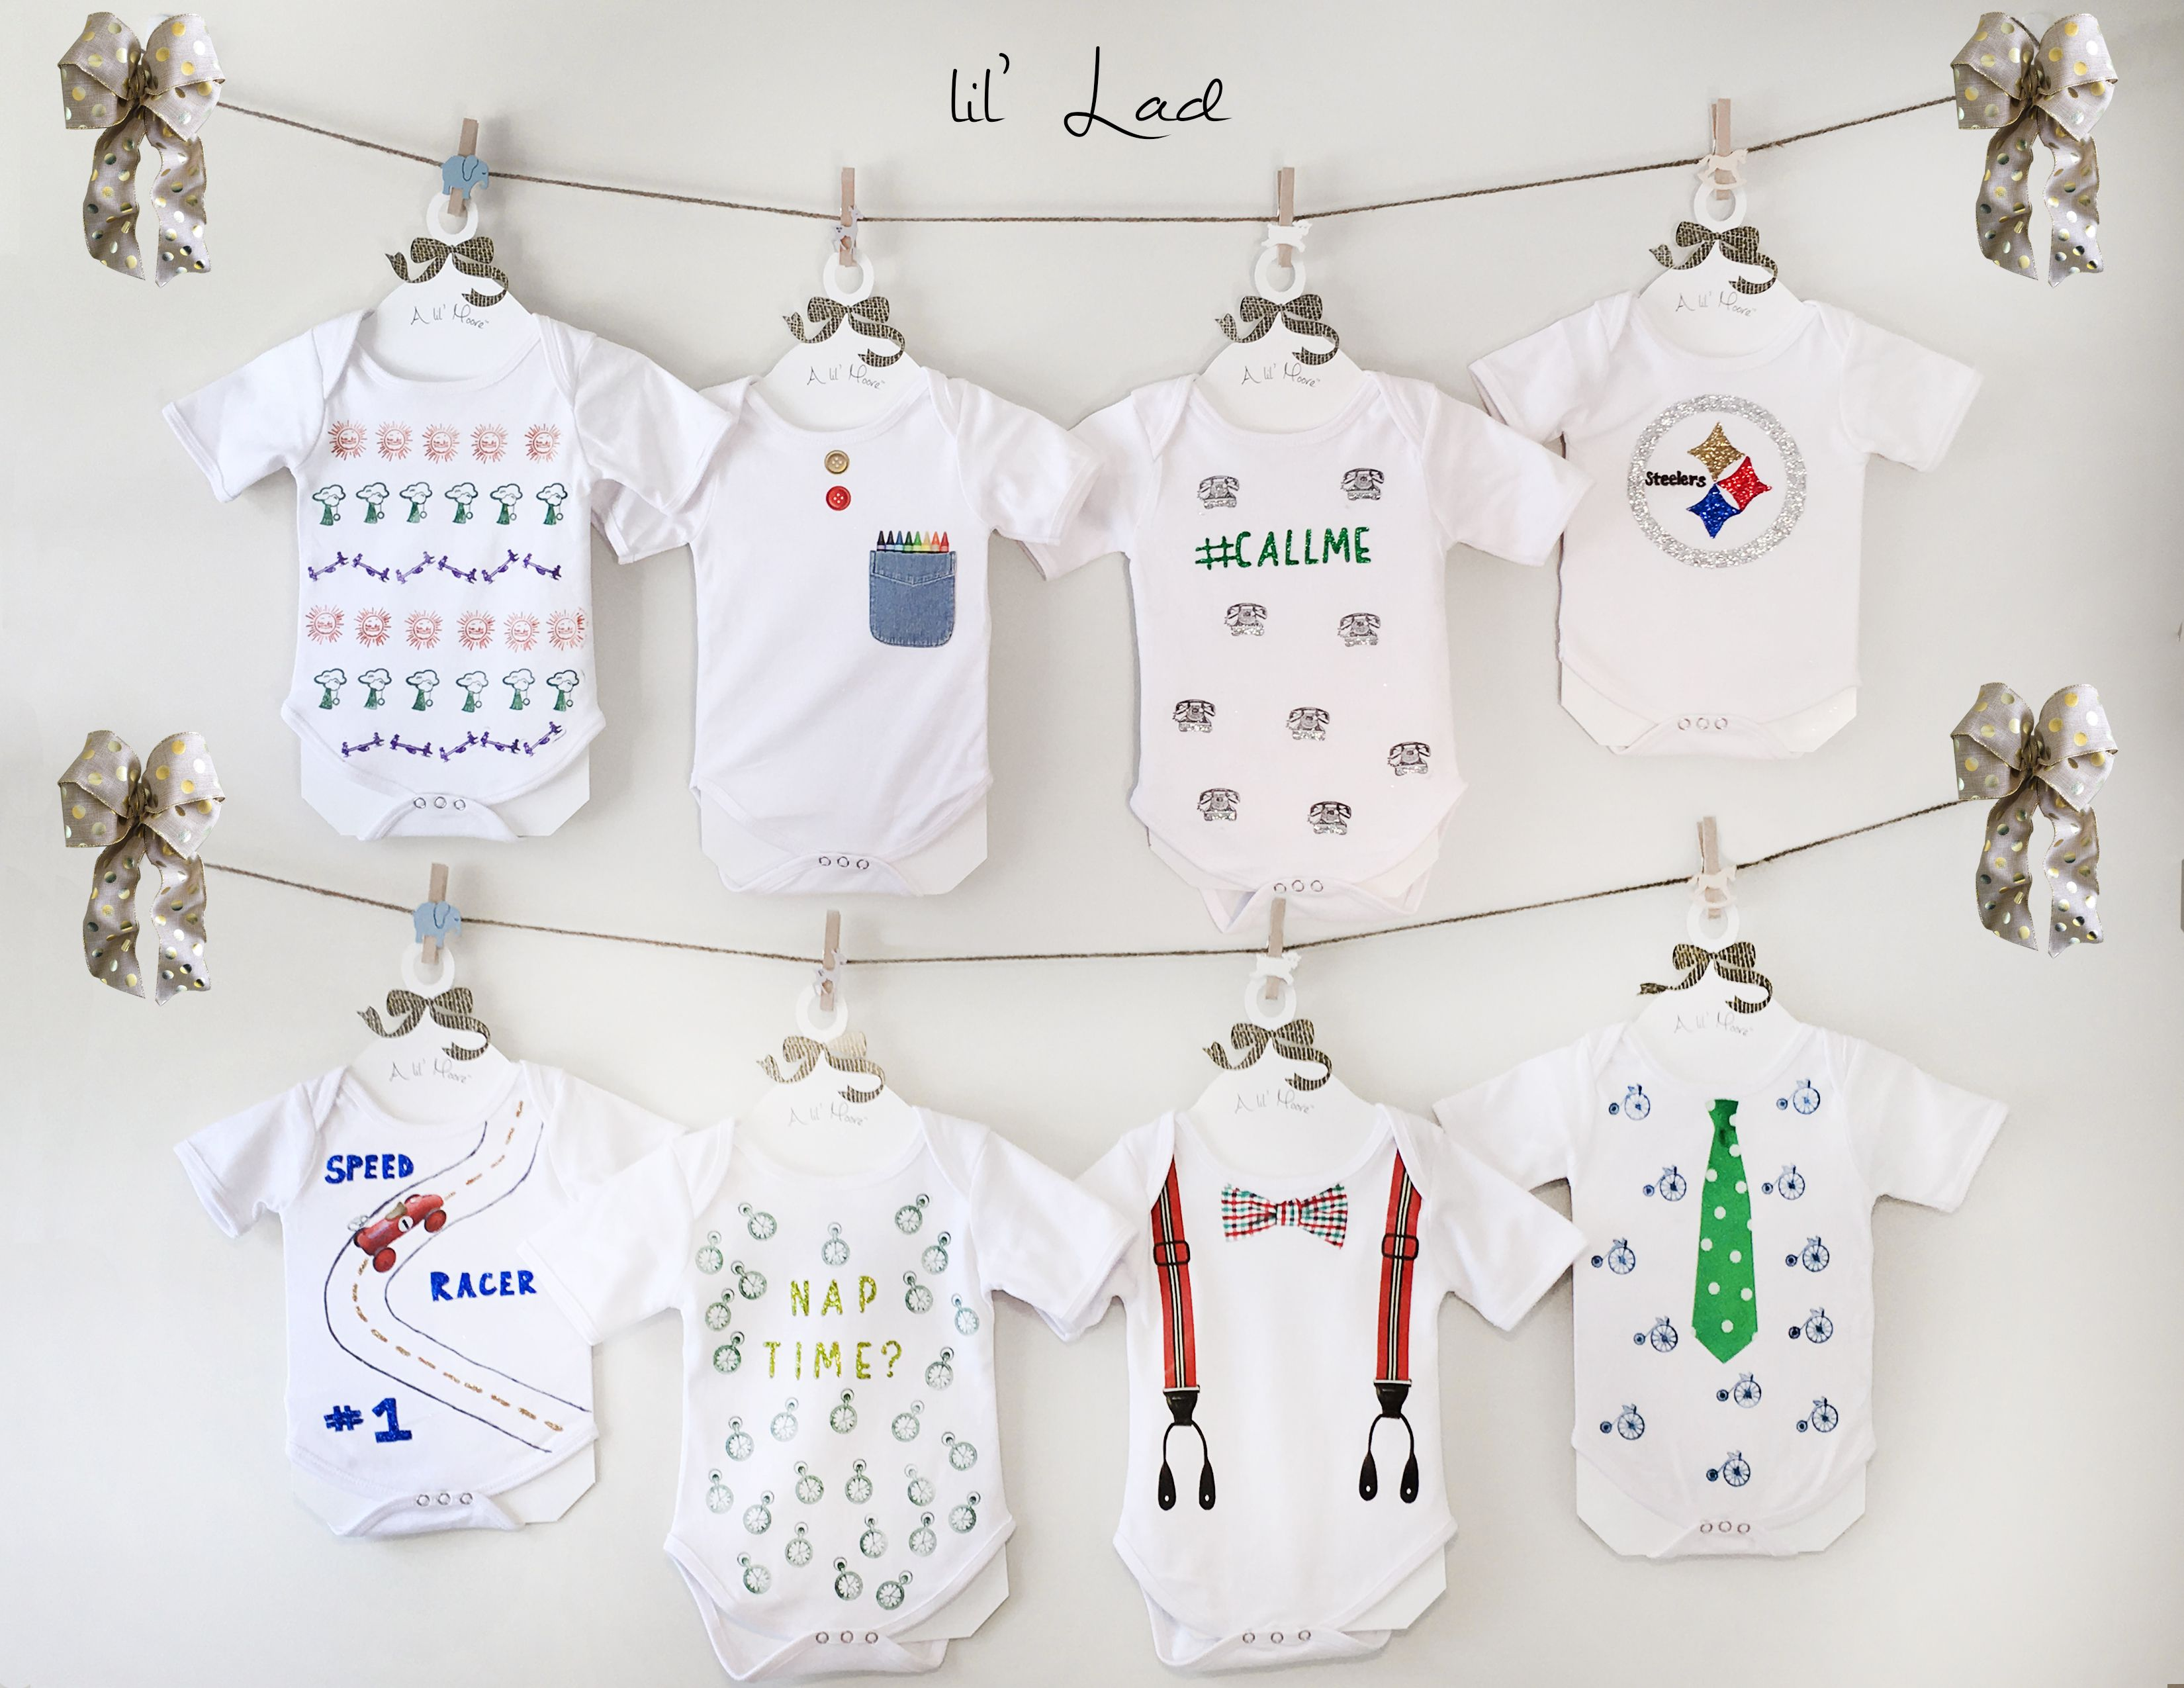 The Ultimate Baby Shower Gift A Onesie Decorating Kit For Boy Girl Or Gender Neutr Baby Shower Onesie Decorating Baby Boy Shower Party Baby Shower Party Kit